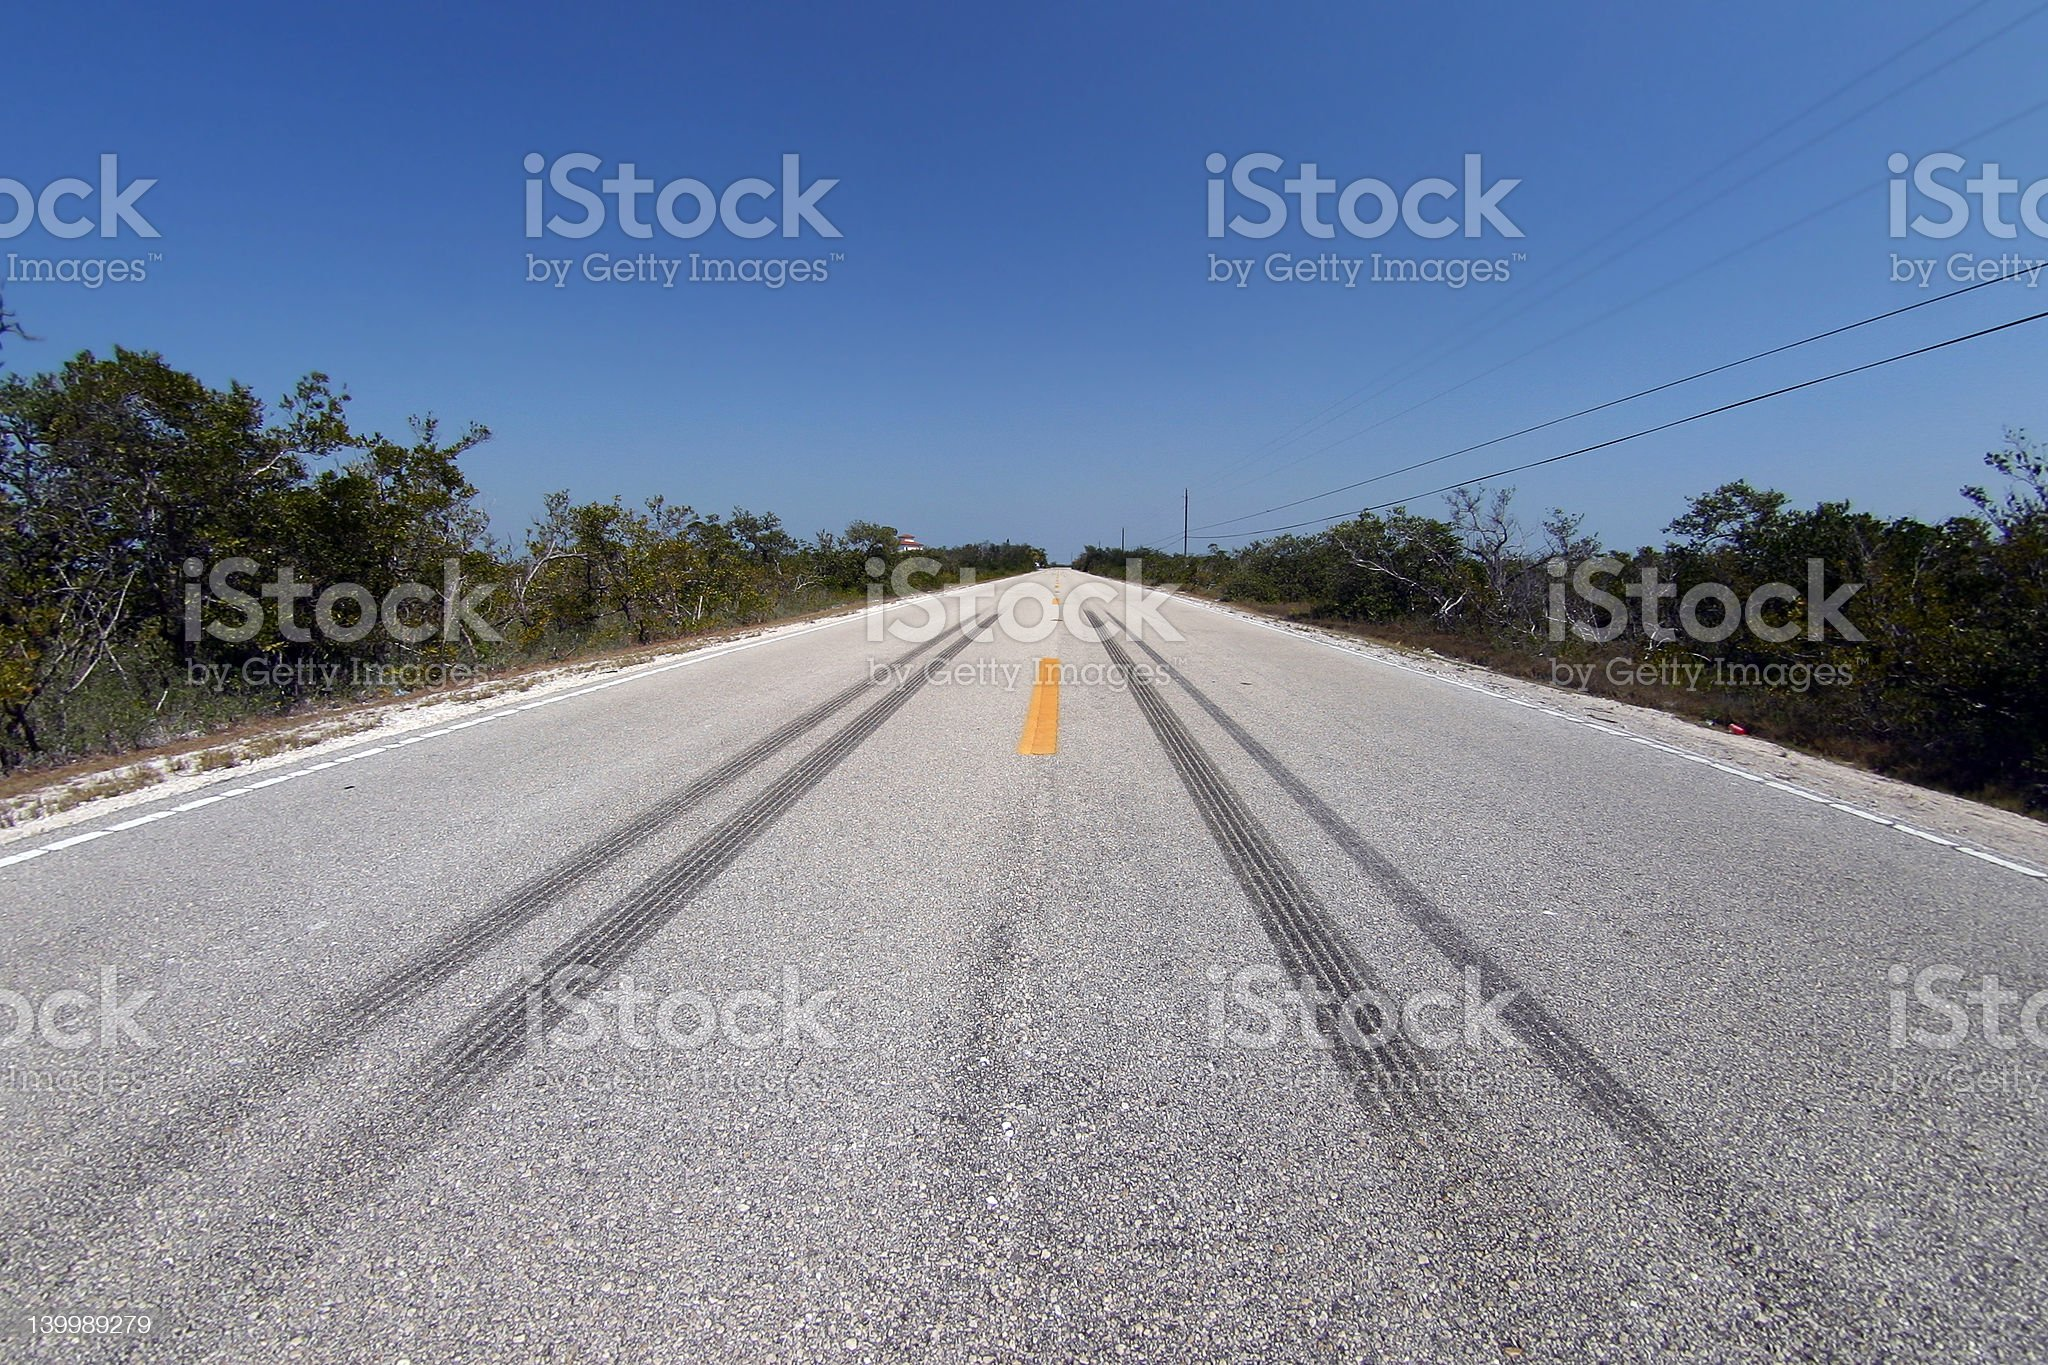 Road to where? royalty-free stock photo